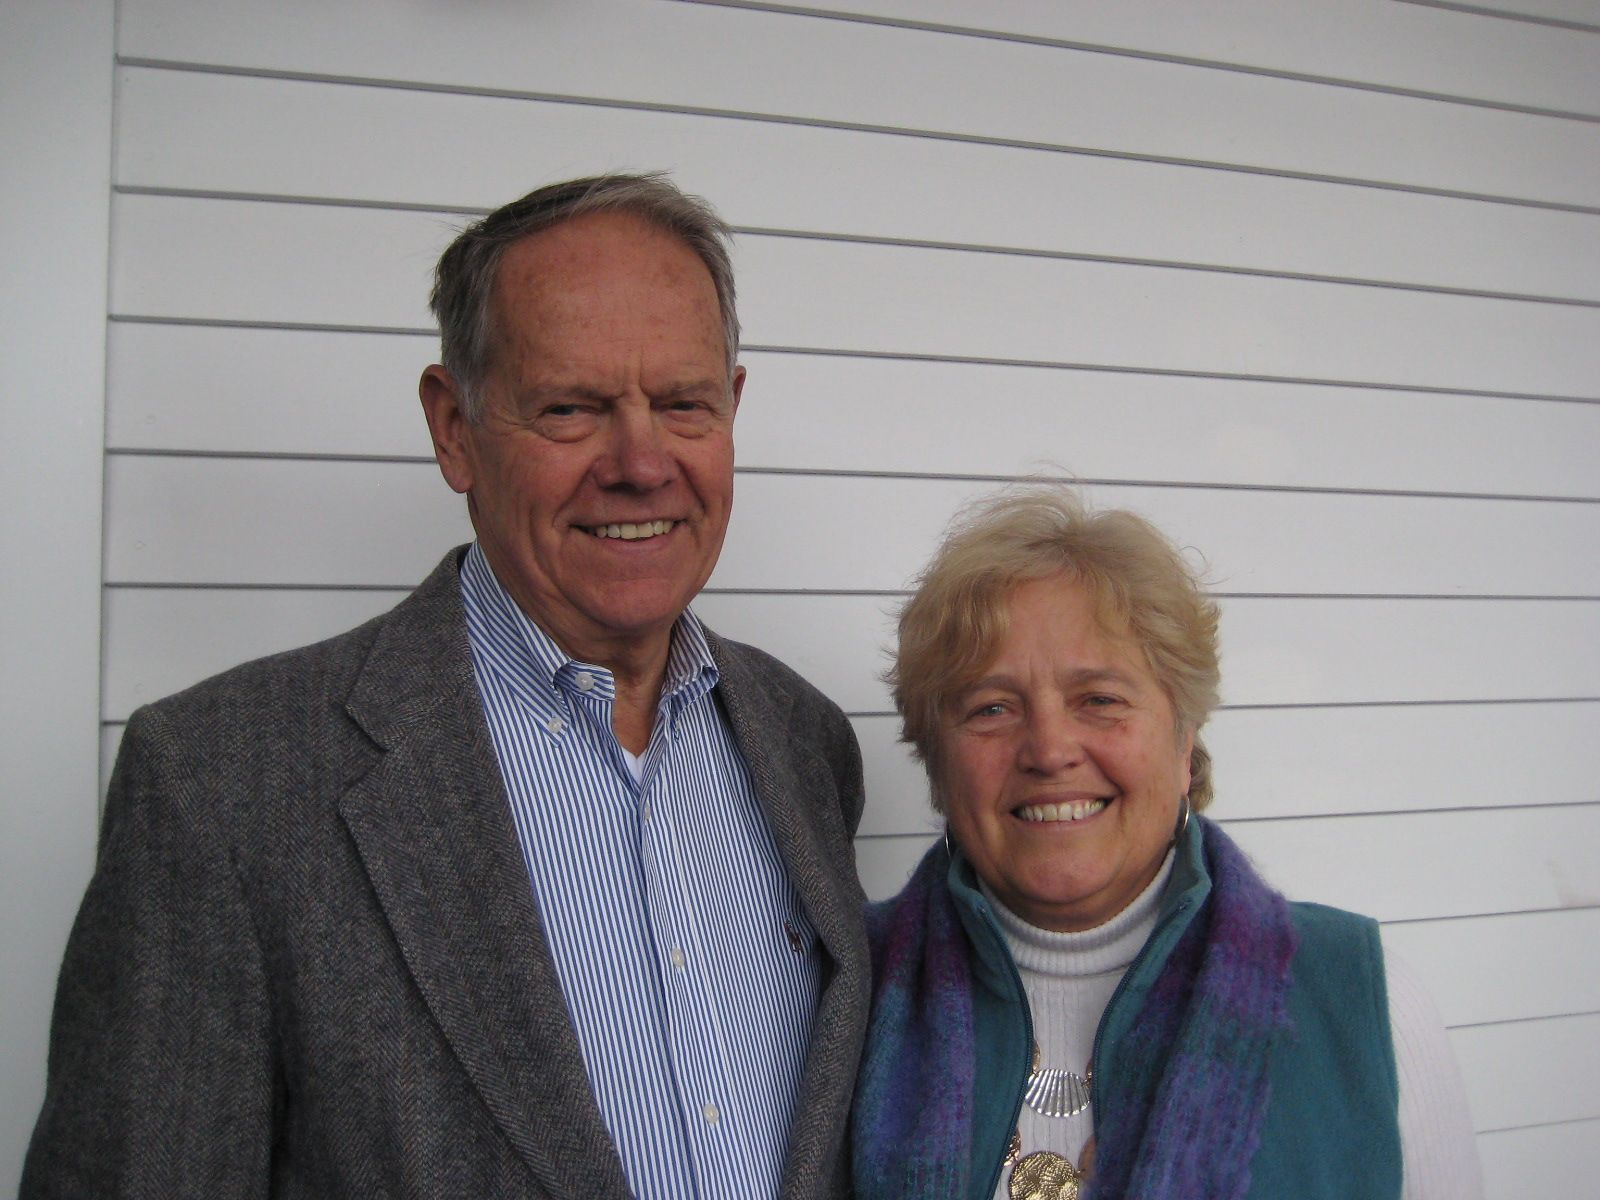 Penny and Reg Elwell '58 at the New Brunswick Inn in Brunswick, Maine on April 3, 2013.